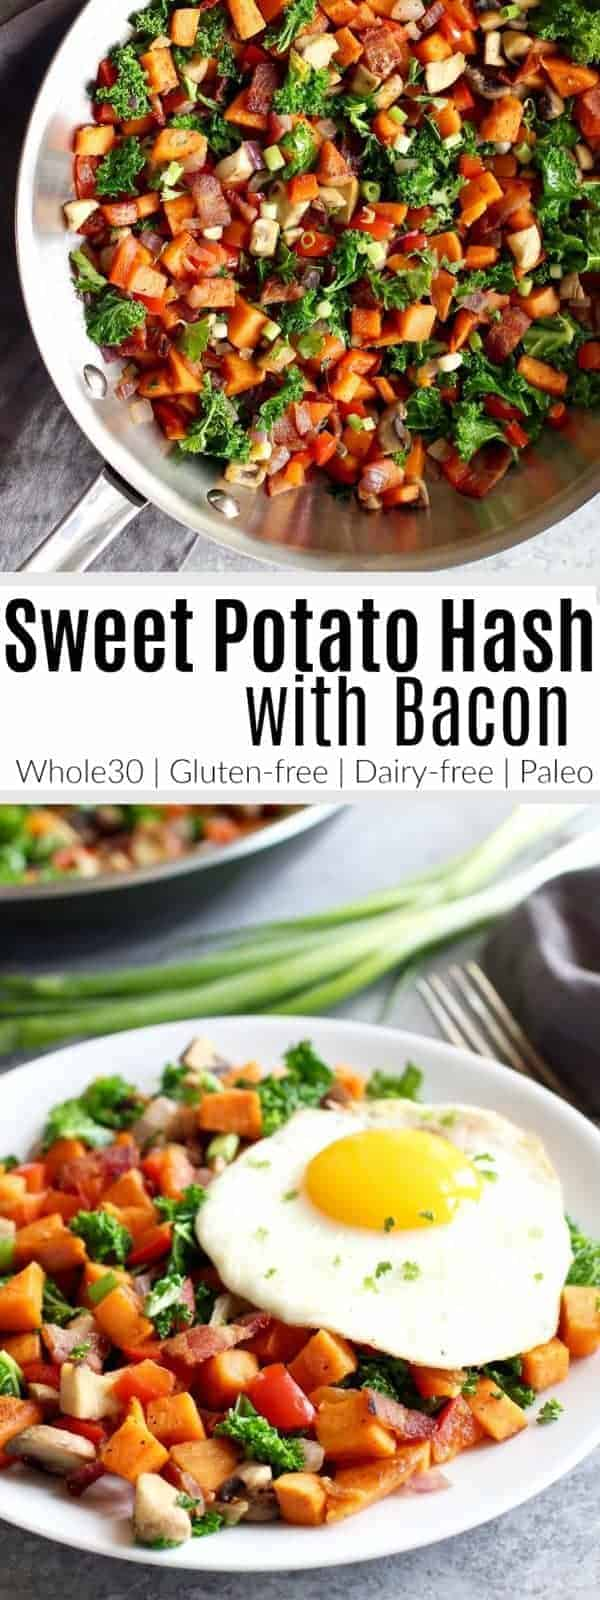 Sweet potatoes, mushrooms, kale, bacon...oh my! This Sweet Potato Hash with Bacon is flavorful, super simple and delicious. A Whole30-friendly recipe you can enjoy for breakfast, lunch or dinner. | The Real Food Dietitians | https://therealfooddietitians.com/sweet-potato-hash-recipe/